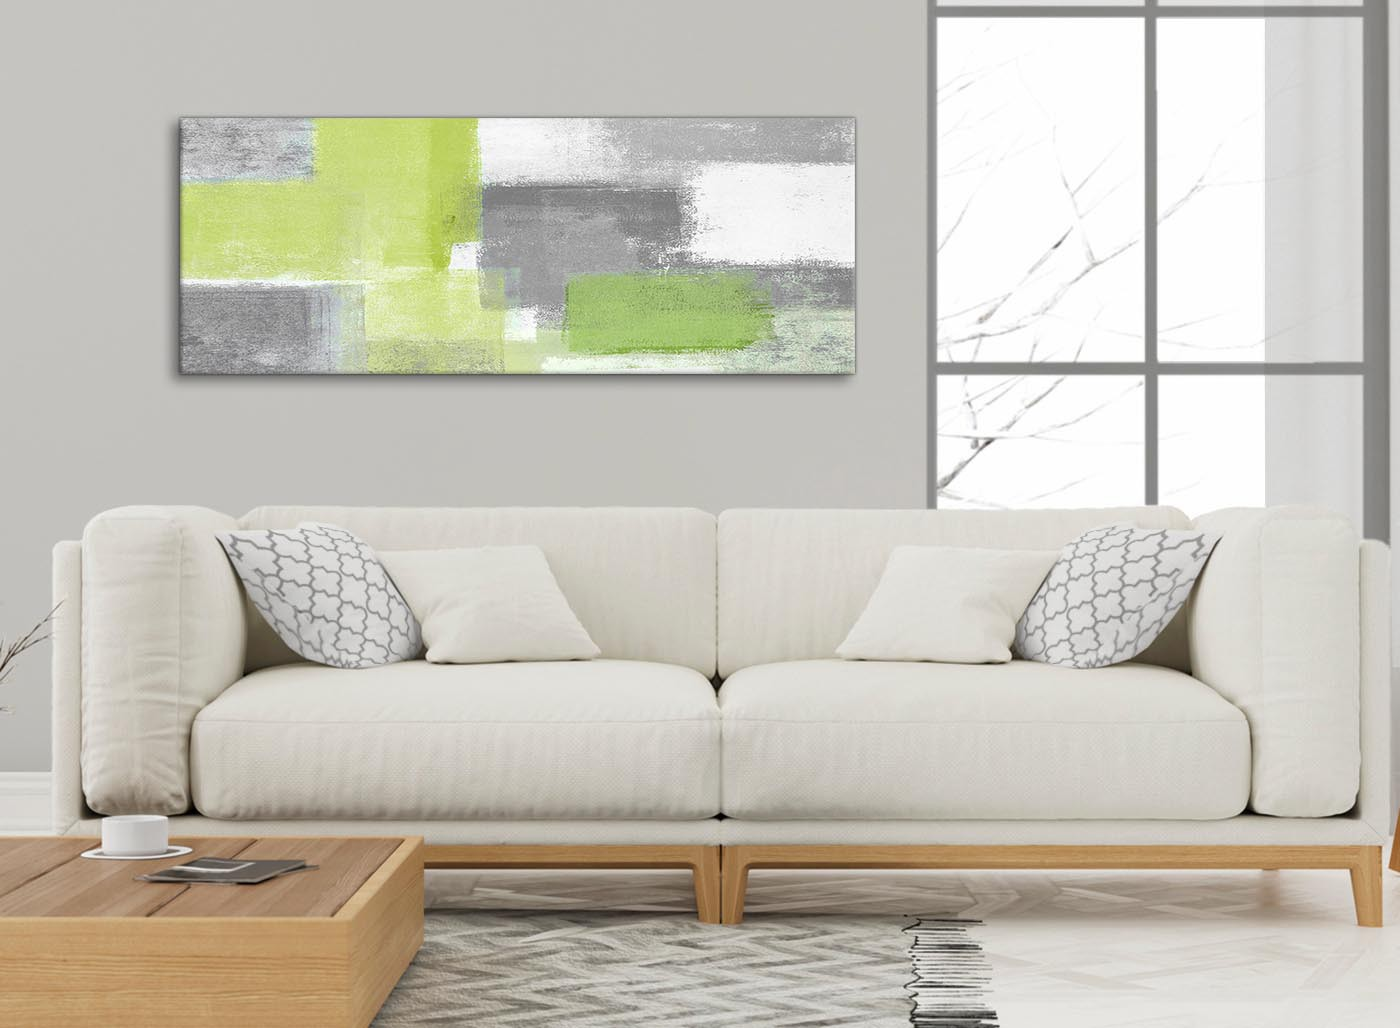 Lime green grey living room canvas wall art accessories abstract 1369 120cm print for Lime green accessories for living room